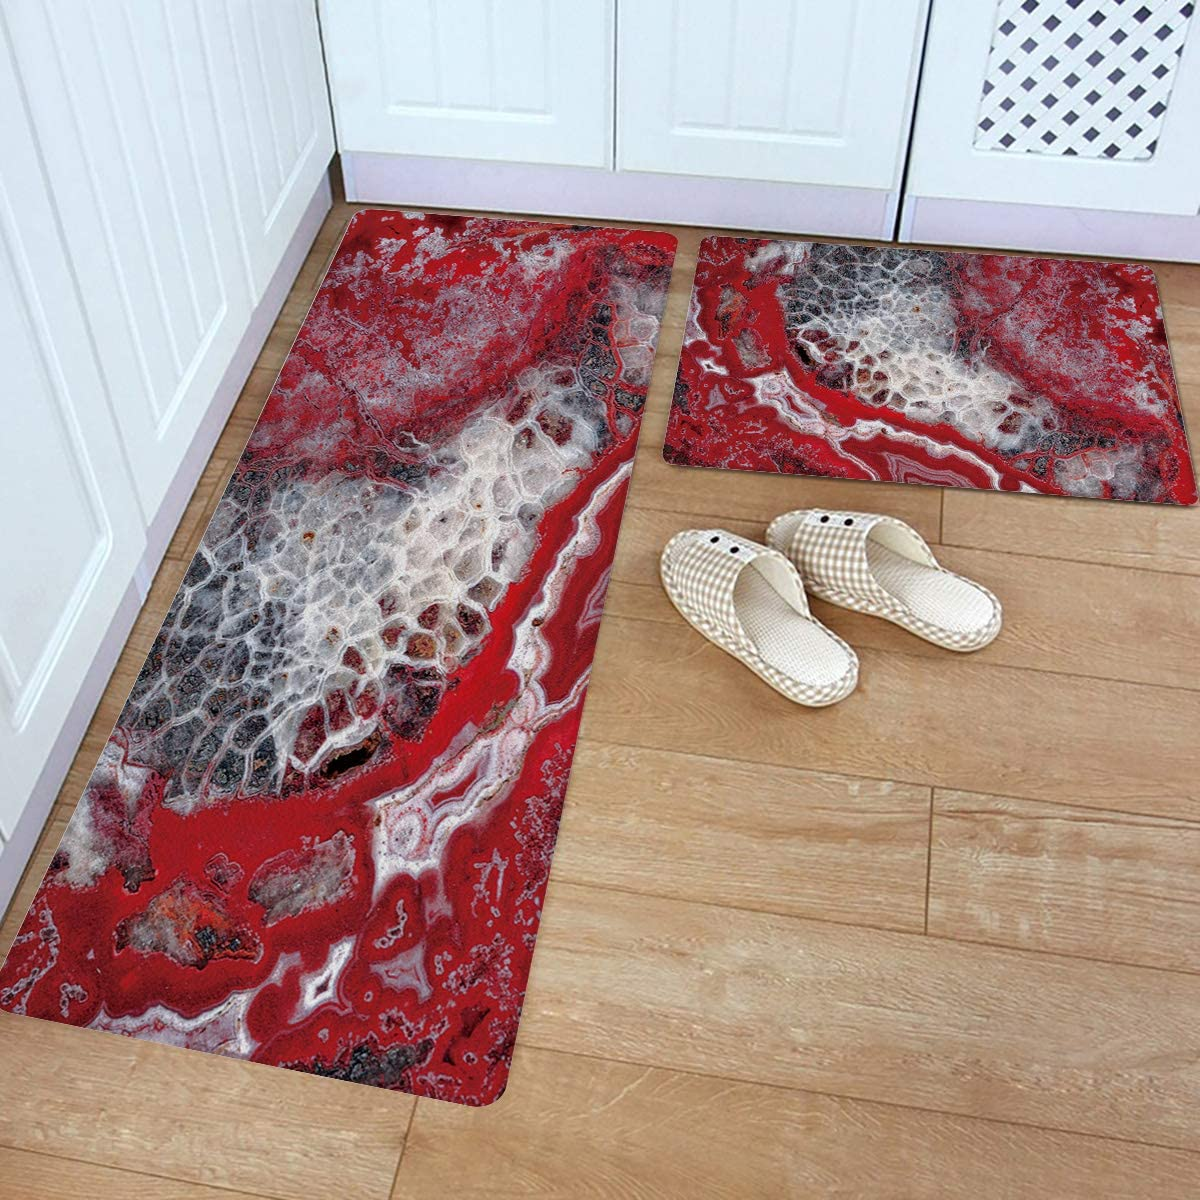 Anti Fatigue Kitchen wholesale Mat Set of Non Slip Thick 2 Long Beach Mall Kitch Cushioned